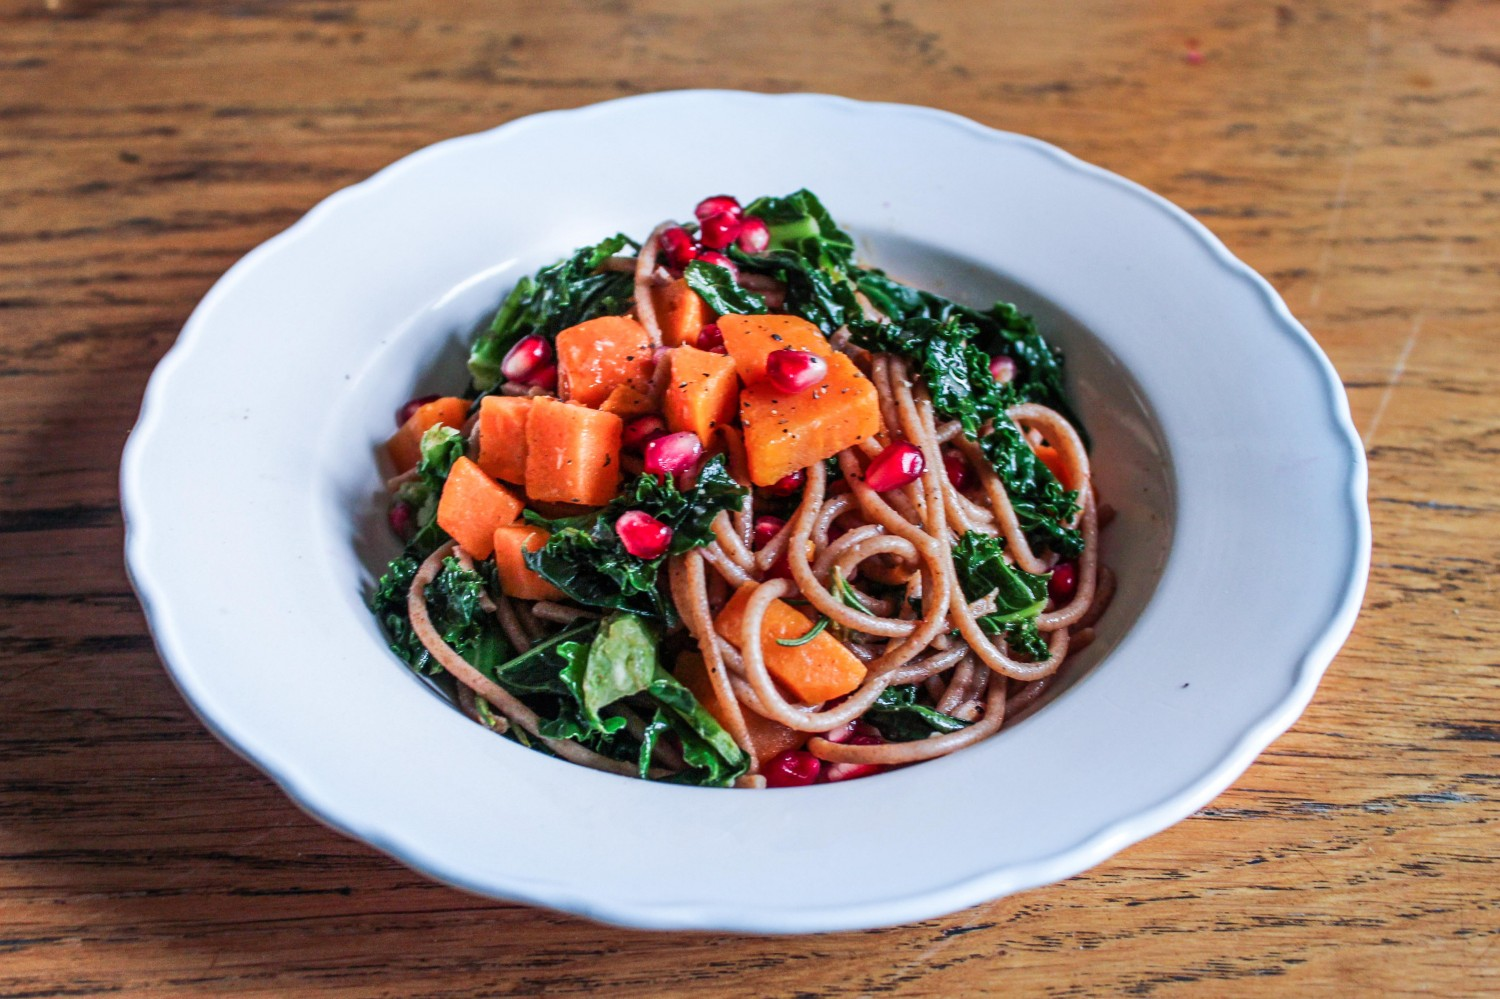 Sweet Potato, Kale and Pomegranate Spelt Spaghetti Bowl - The YES Chef